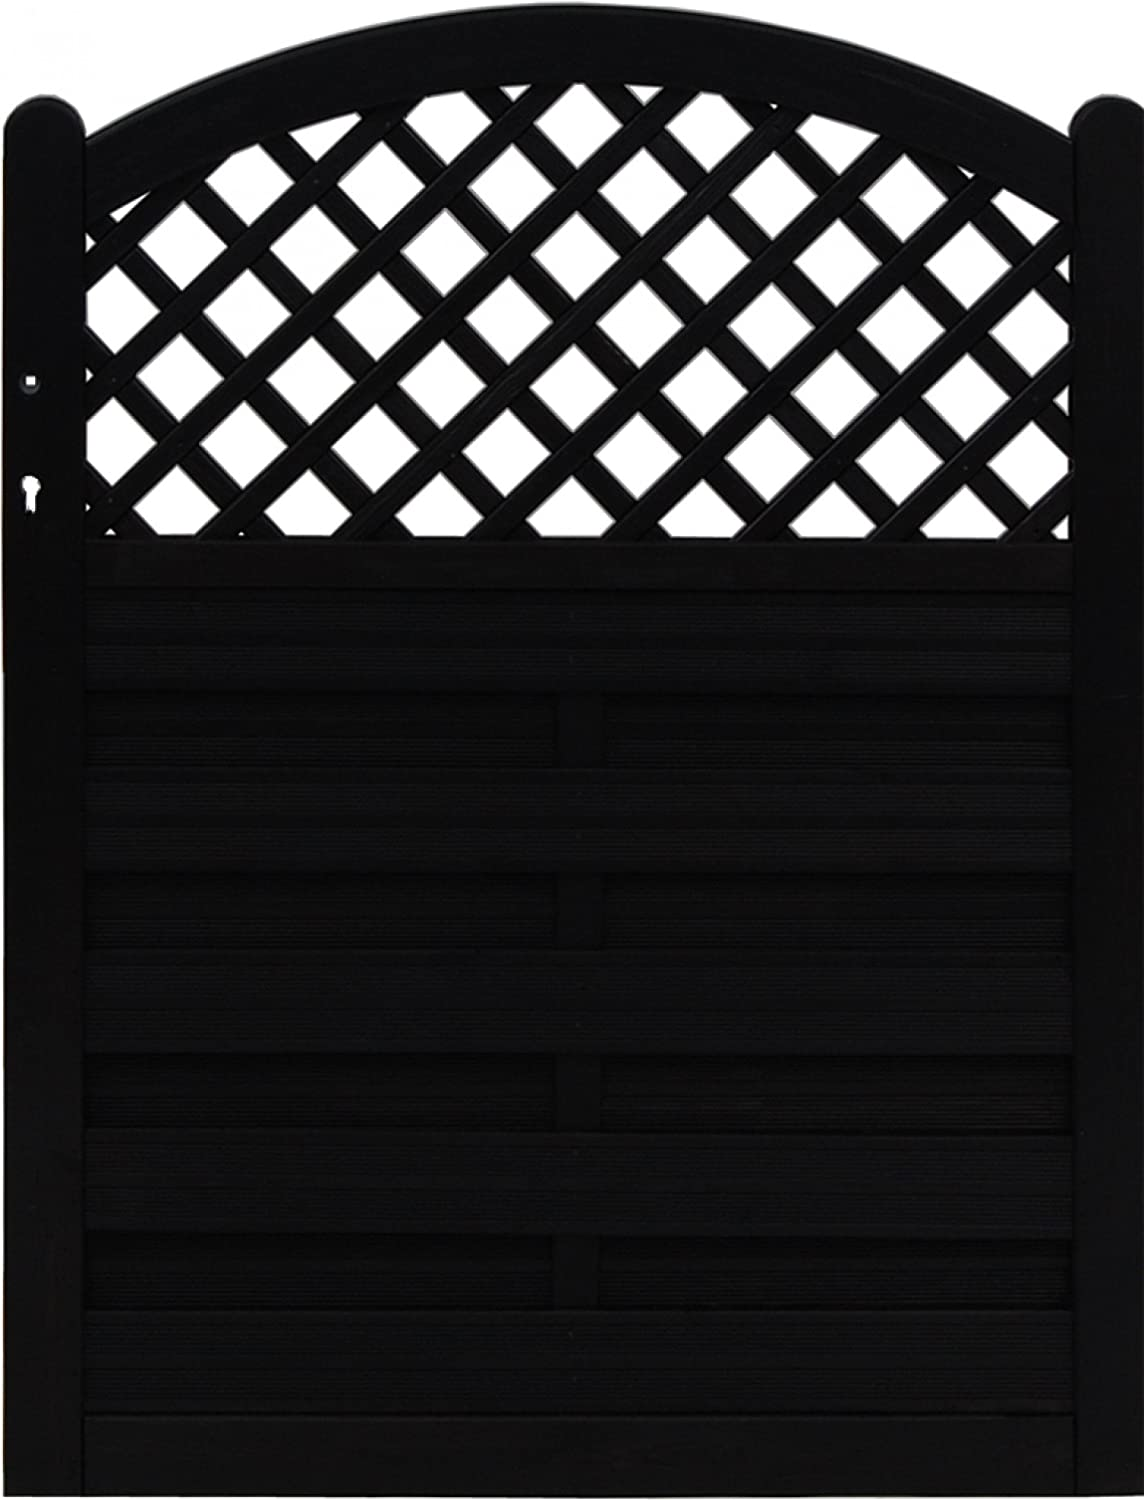 Andrewex wooden wicket, fencing panel, garden fence 120 x 100, varnished, anthracite